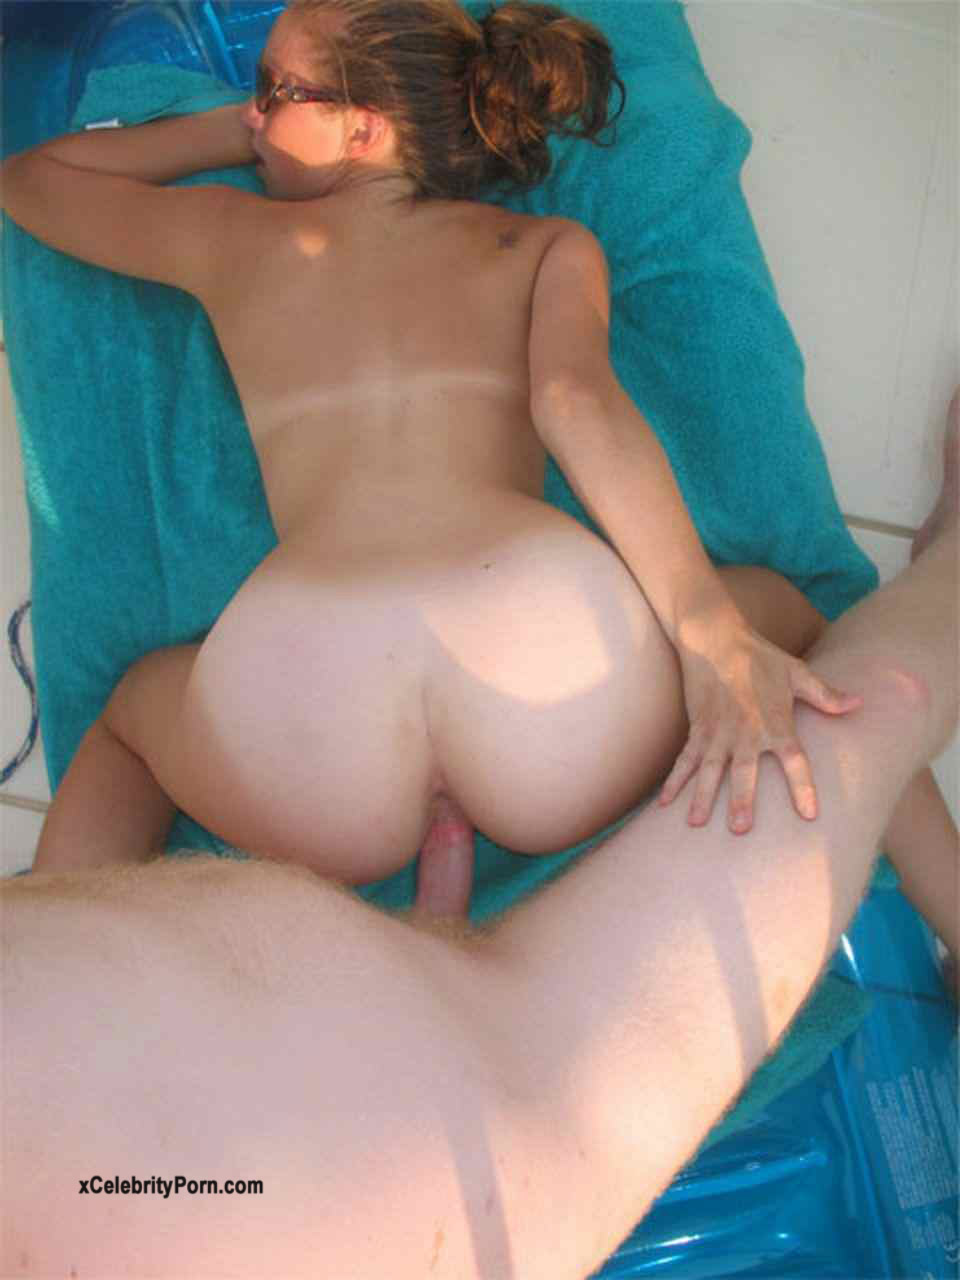 Mujeres Belgas Fotos xxx -belgas-porno-video-completo-hd-belgas-para-casarce-matrimonio-pareja-peru-chile-mexico-cogiedno-follando (2)